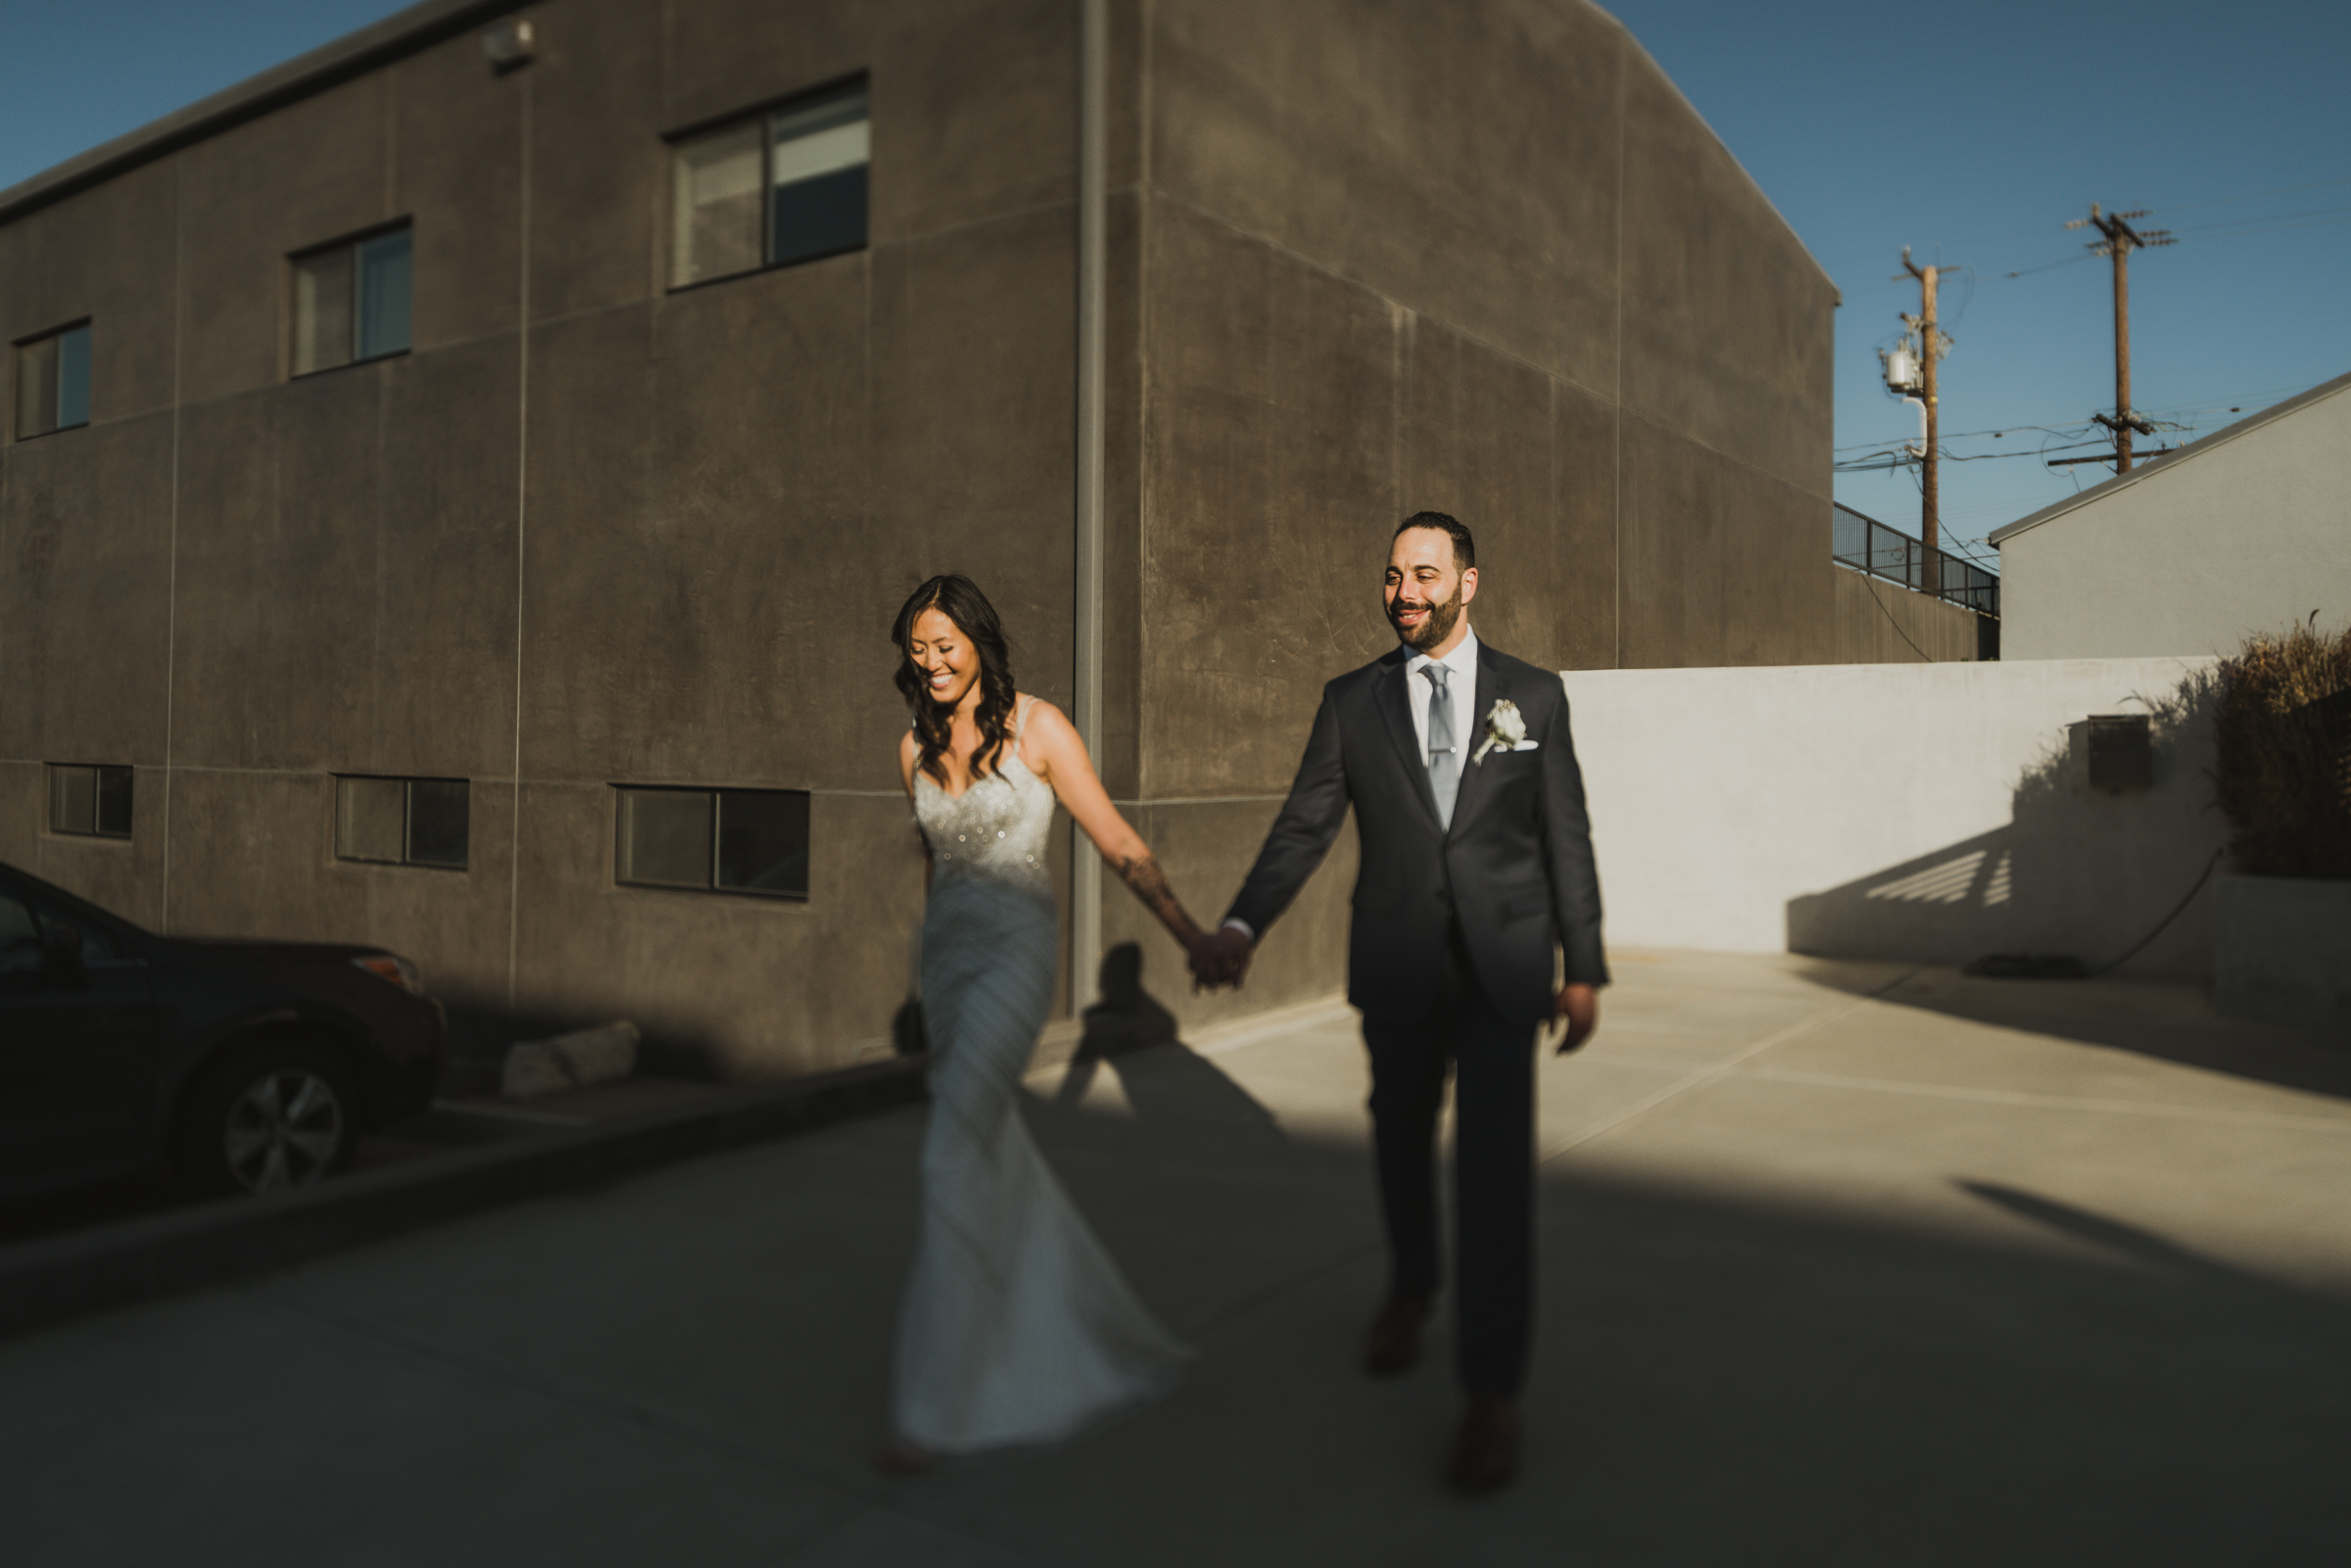 ©Isaiah + Taylor Photography - Big Door Studios Wedding, El Segundo, Los Angeles Wedding Photographer-43.jpg